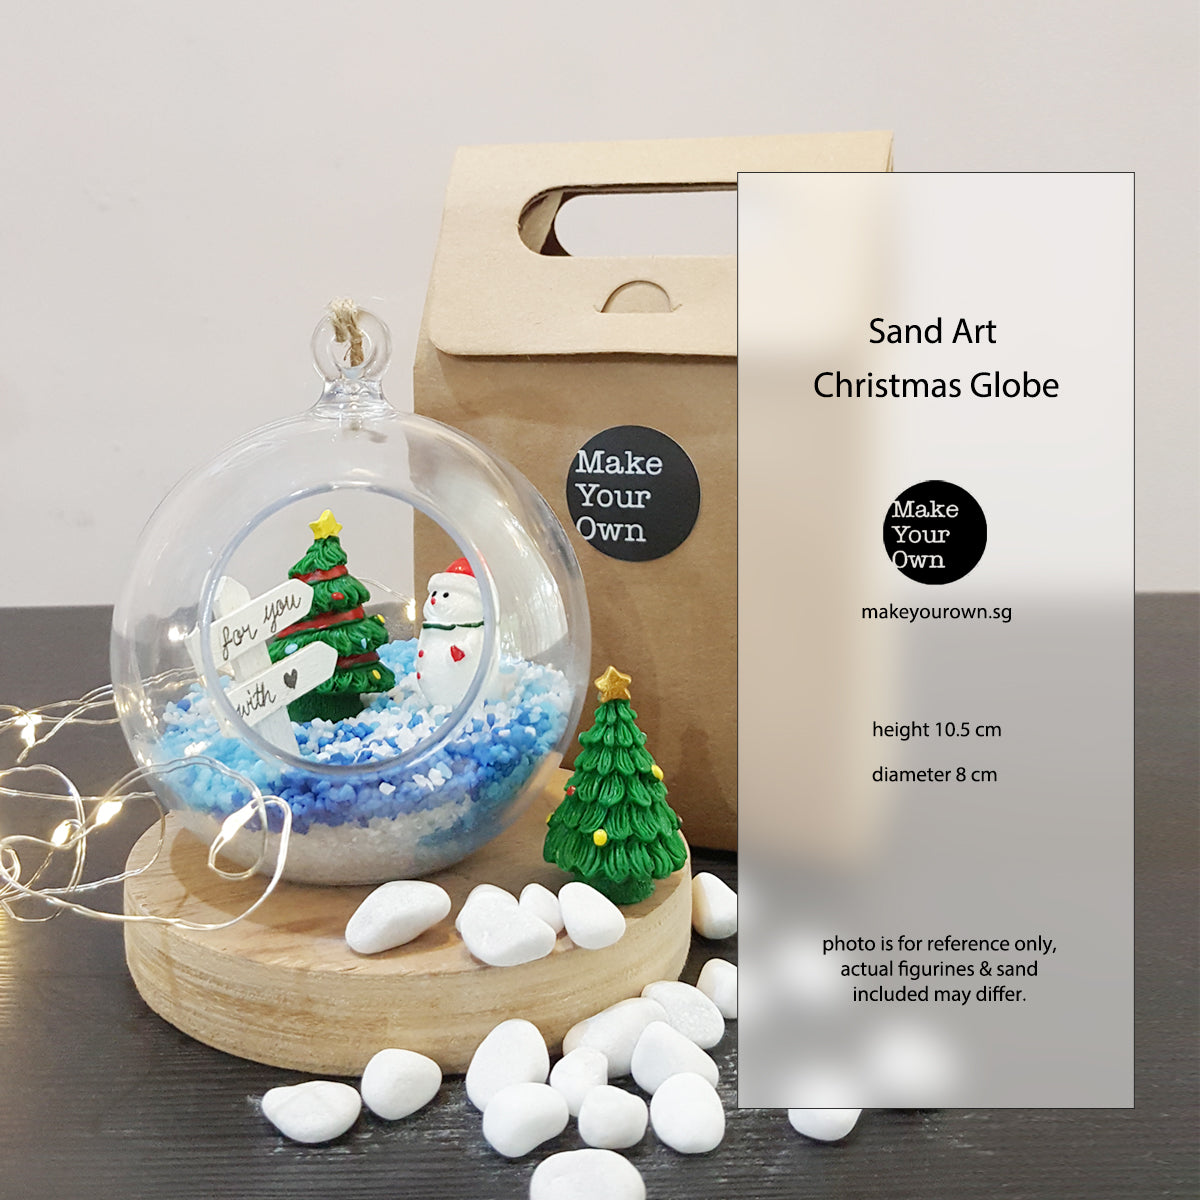 sand art christmas globe event diy kit virtual workshop singapore